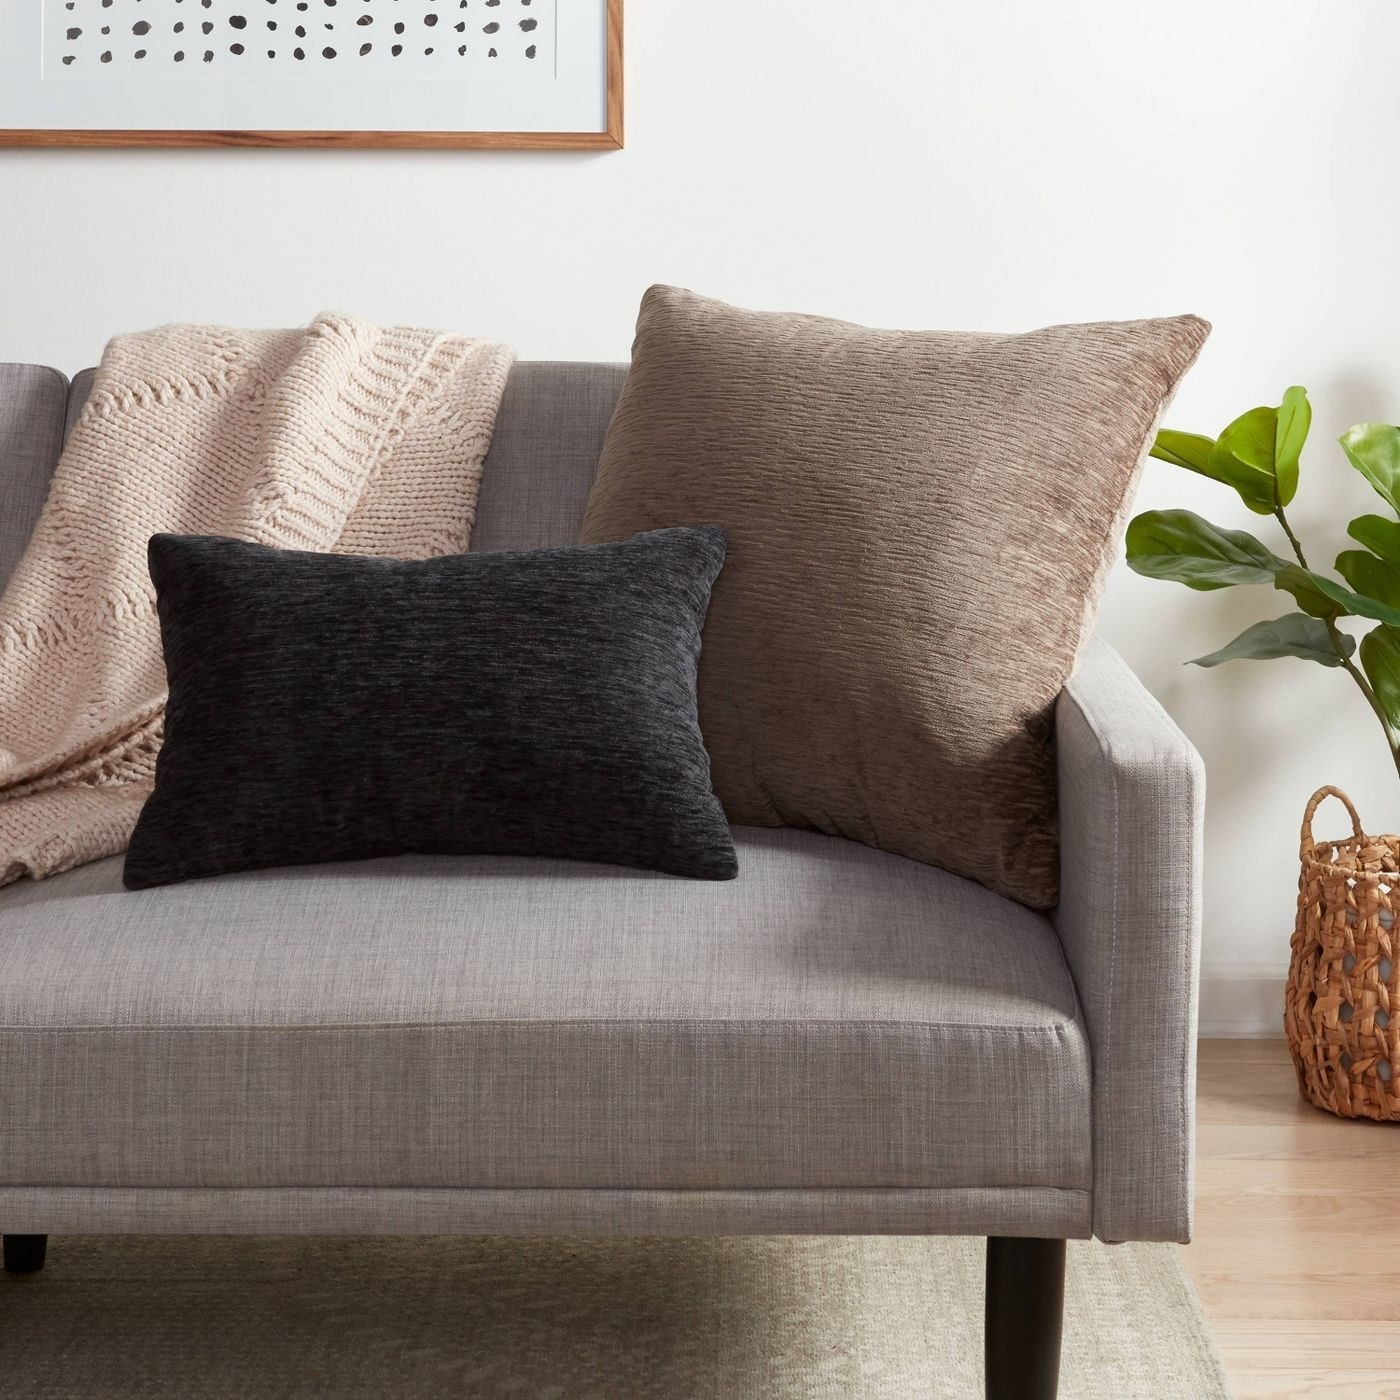 Brown and black pillows in a home